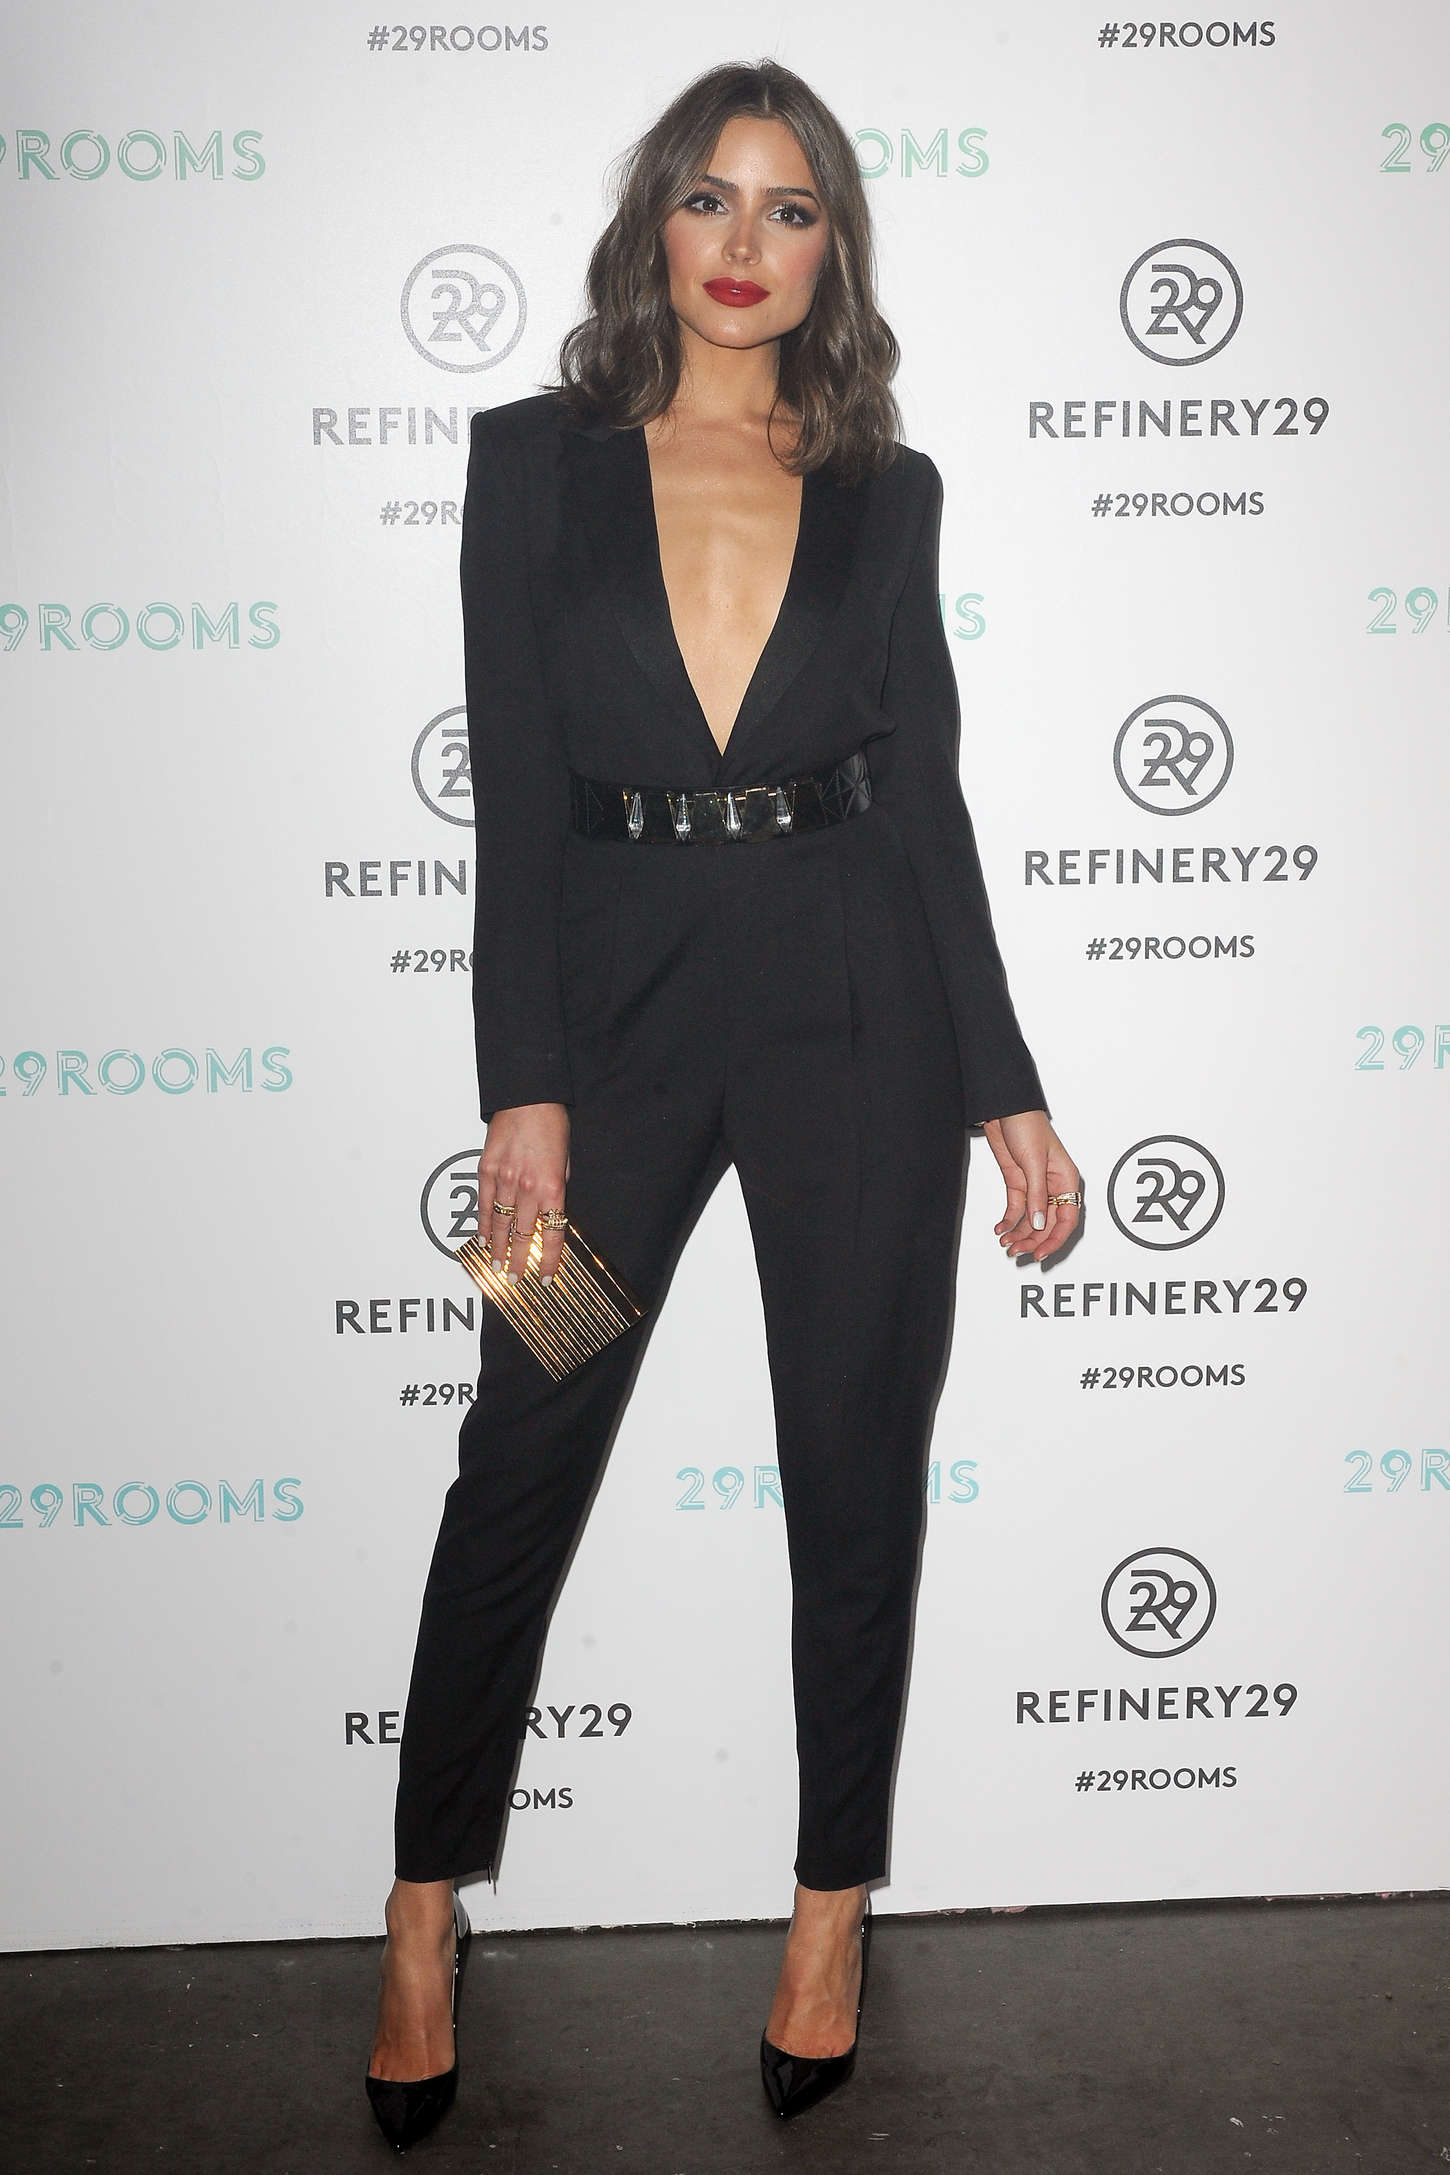 Olivia Culpo 2015 : Olivia Culpo: Refinery29 Presents 29Room -06